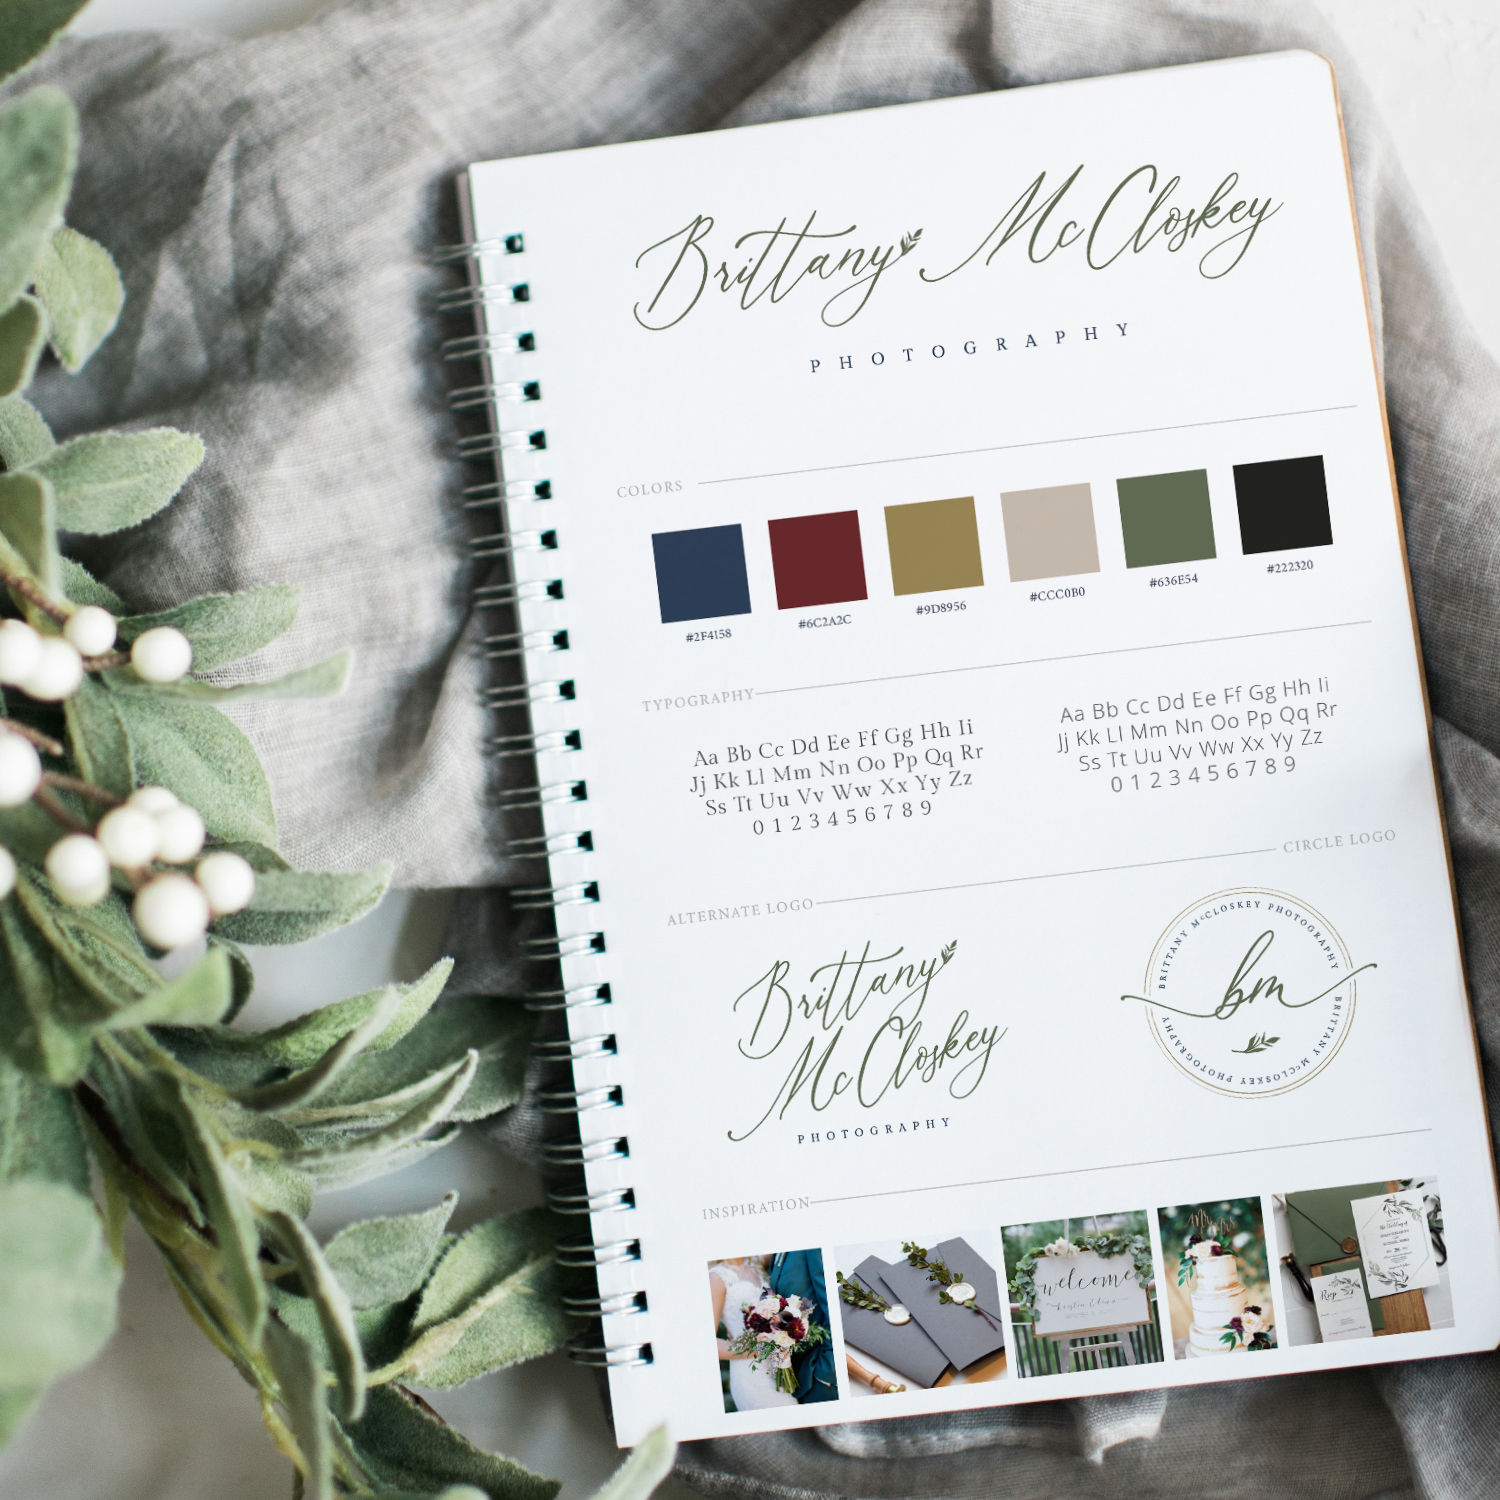 Brand Board Mockup for Brittany McCloskey Photography by Leesa Dykstra Designs.jpg